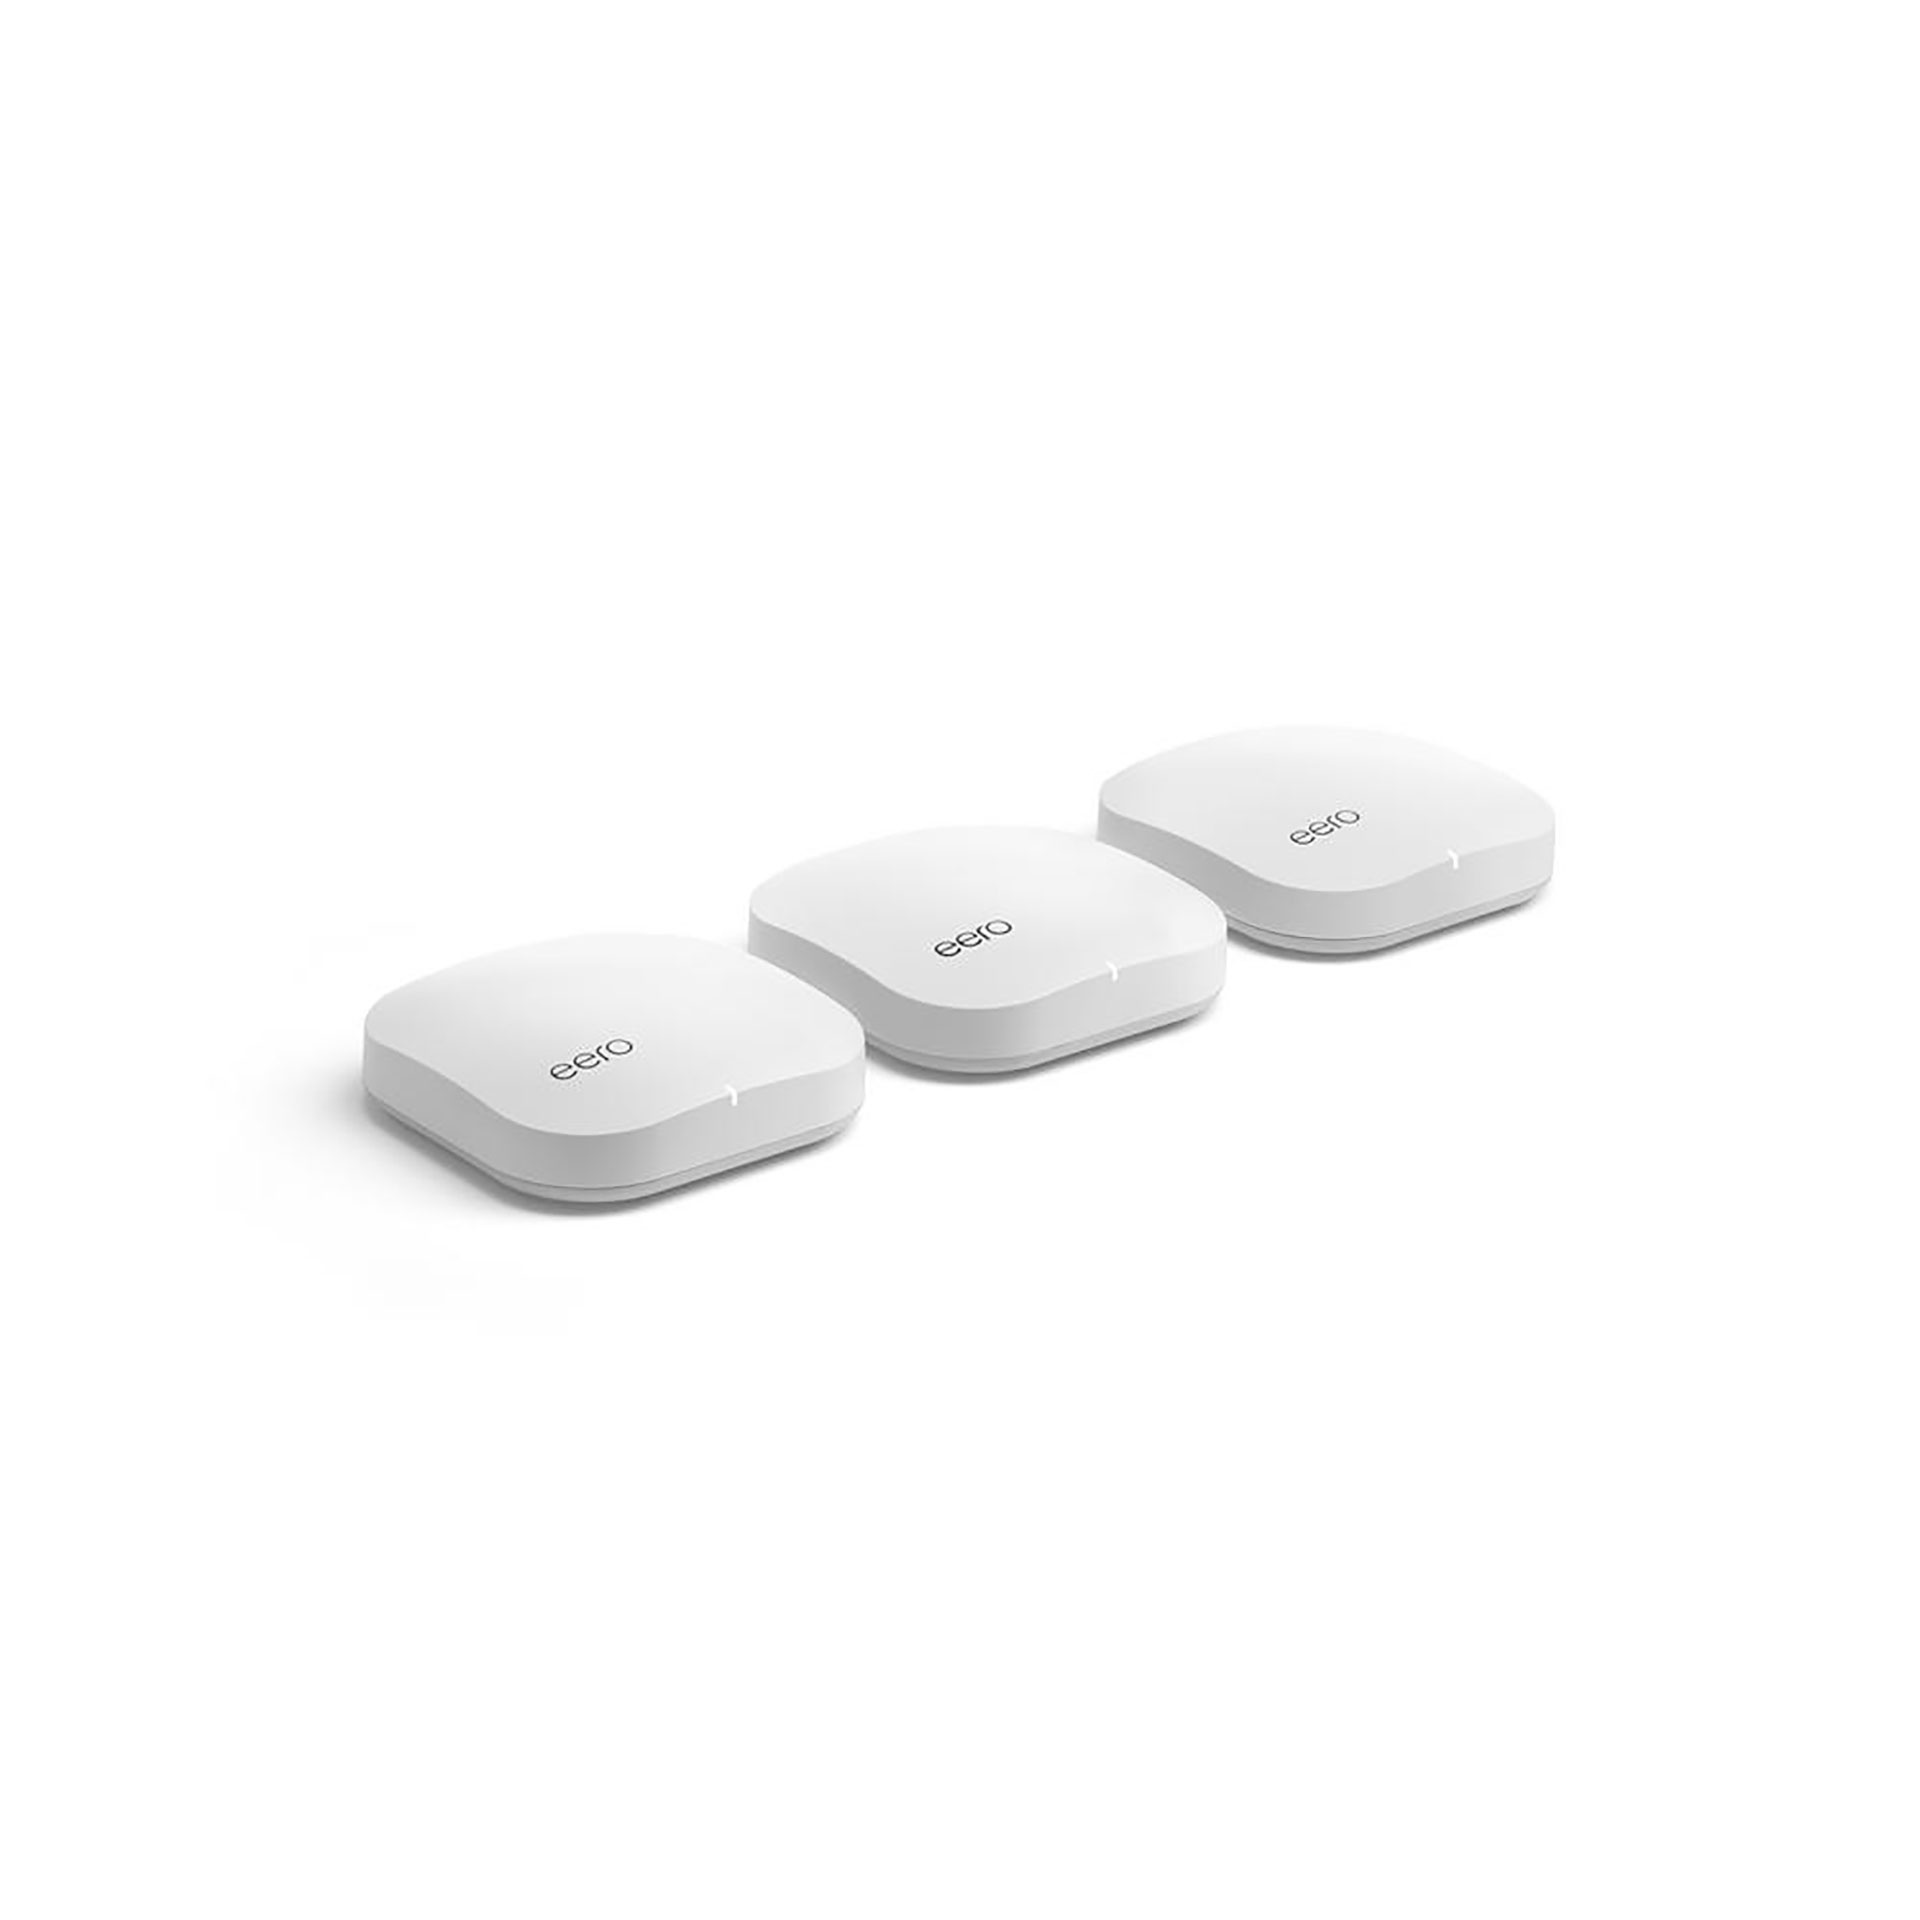 Ring Brand Kit for Small and Large Businesses, LA SMART HOME